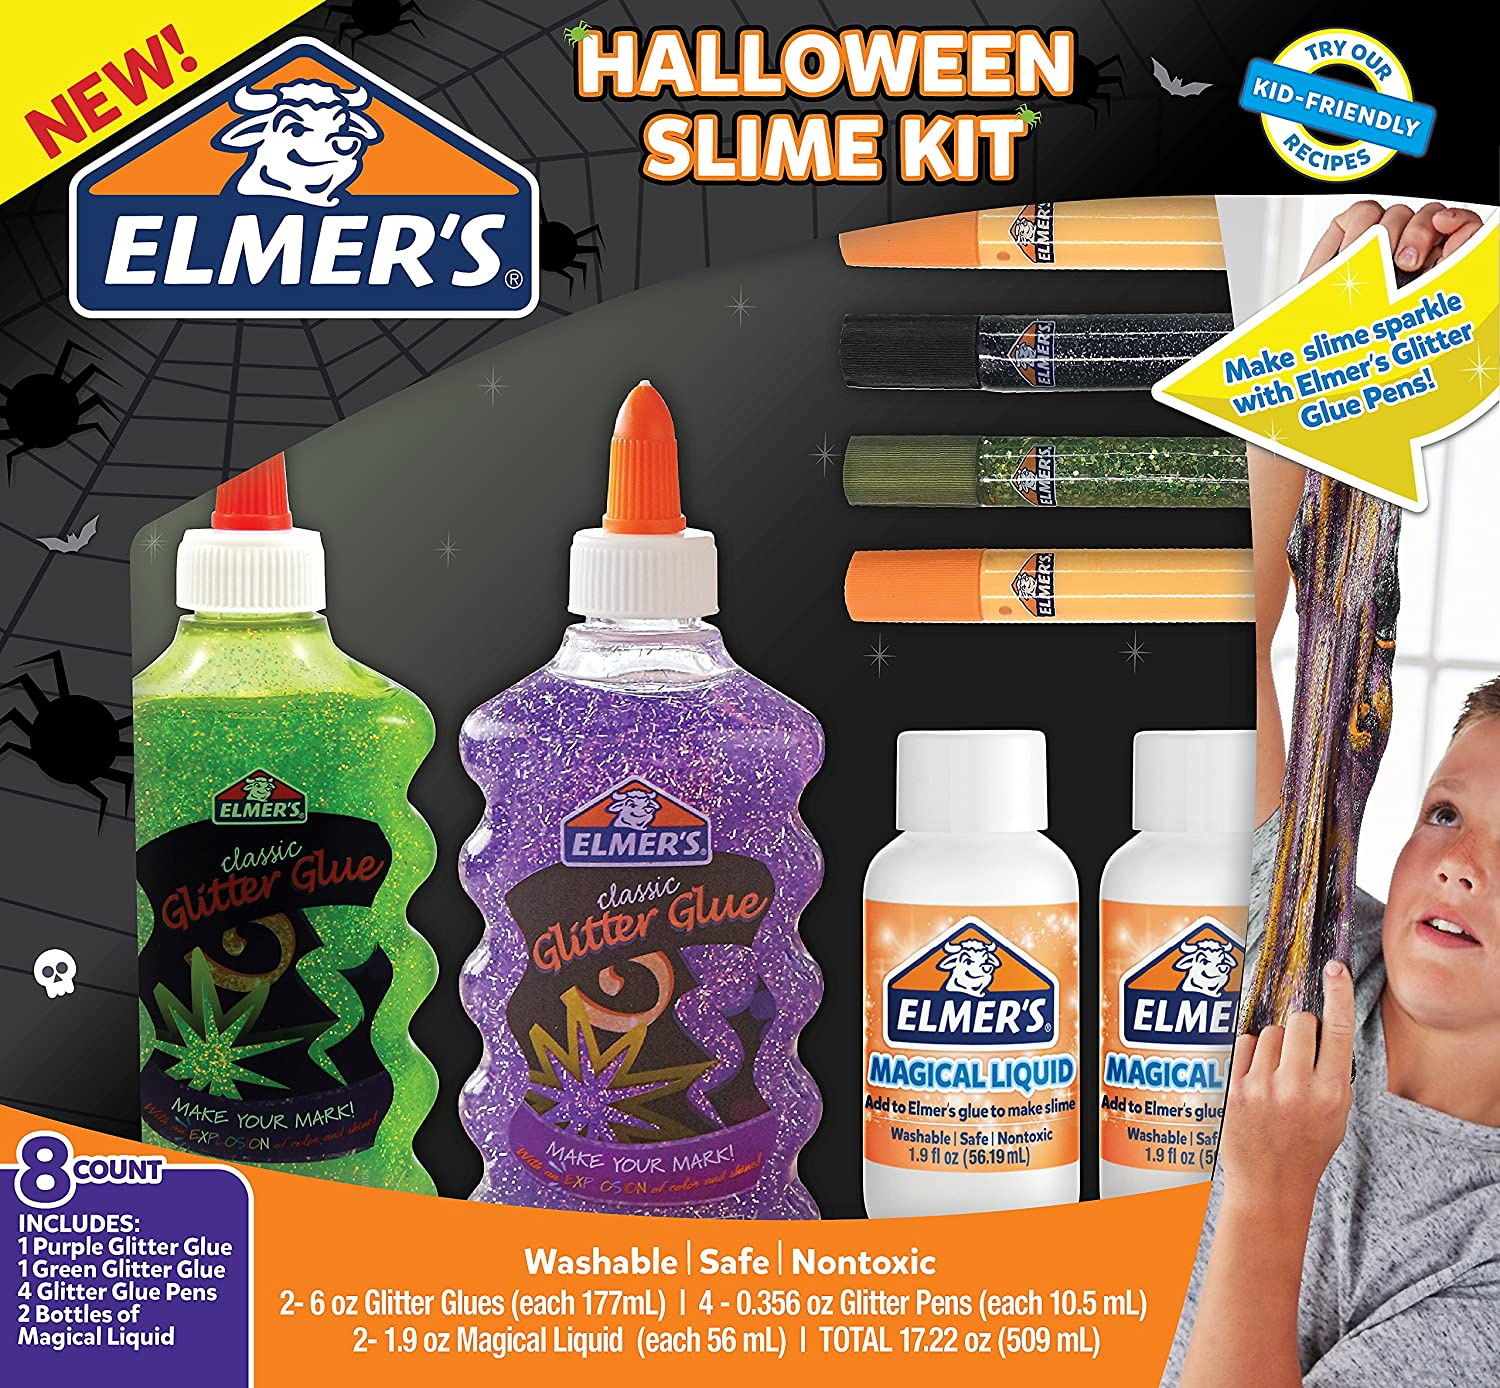 Elmer's Glue Frosty Slime Kit, Clear School Glue, Glitter Glue Pens & Magical Liquid Activator Solution, 12 Count Elmer's Products 2024018